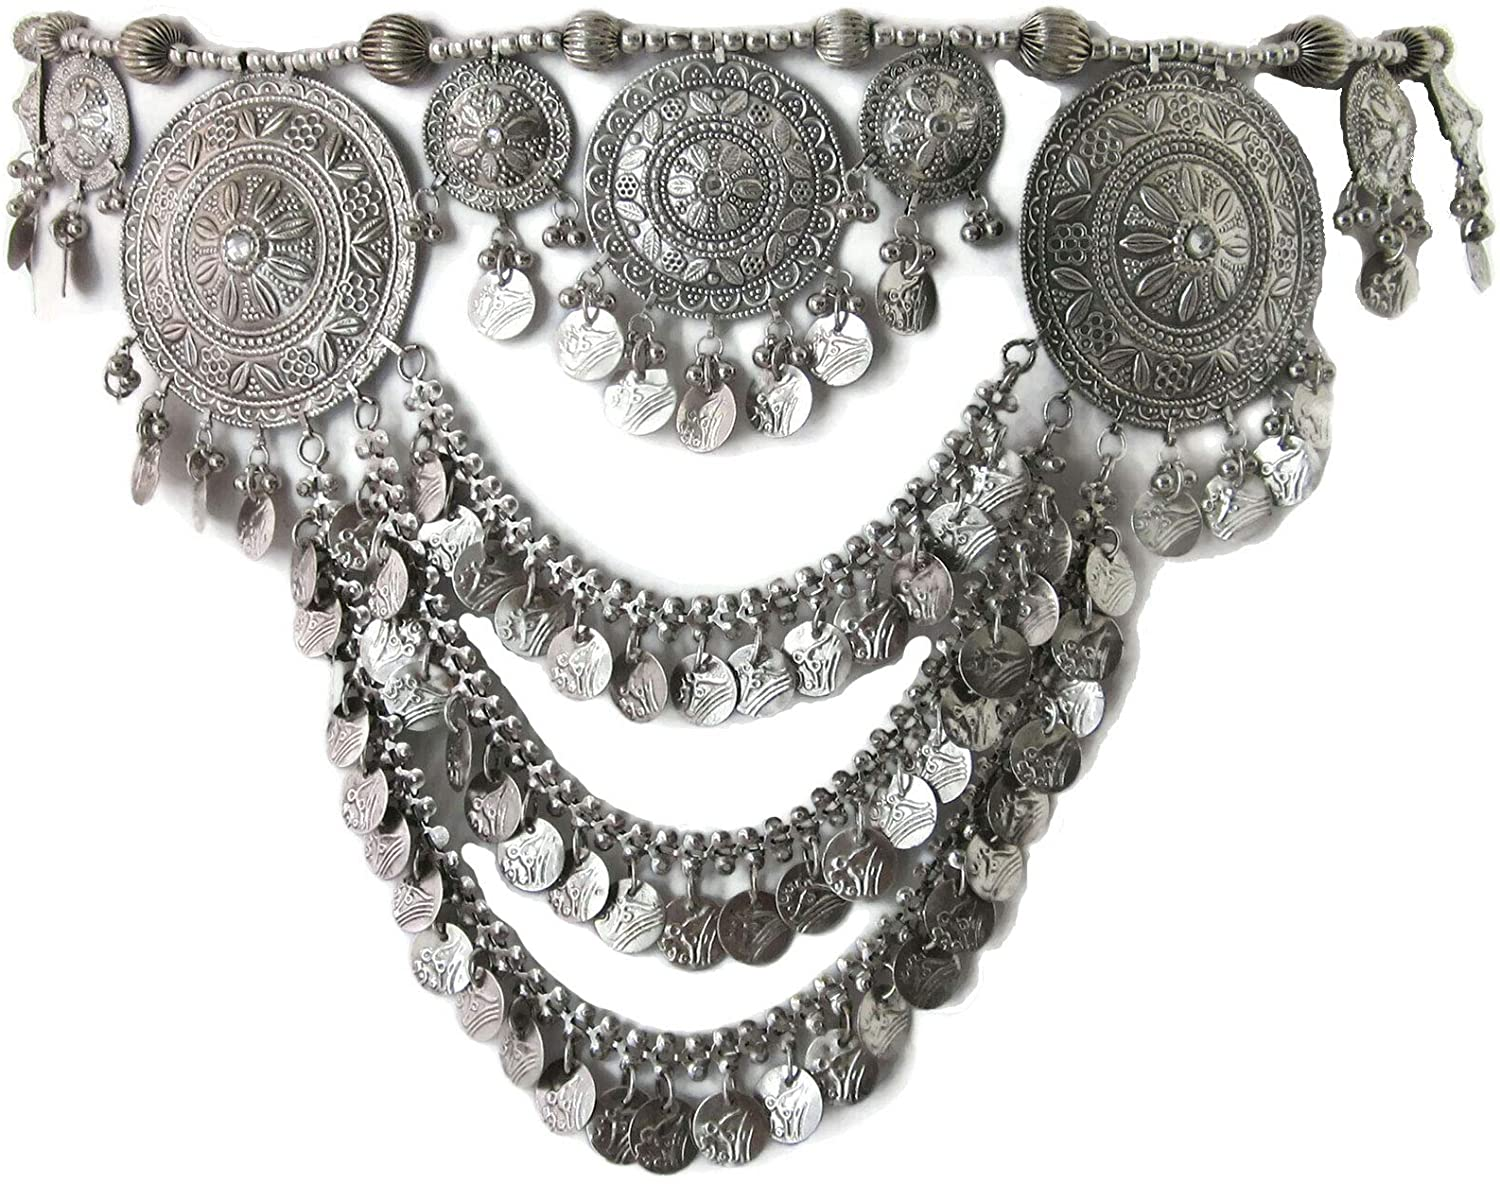 IndiaStop Unique Design Coin Fringe Tribal Belly Dance Belt | Gypsy Hippie Boho Music Festival Style Hip Waist Novelty Fashion Jewelry | Handmade Metal Medallions | One Size Belt with Ties